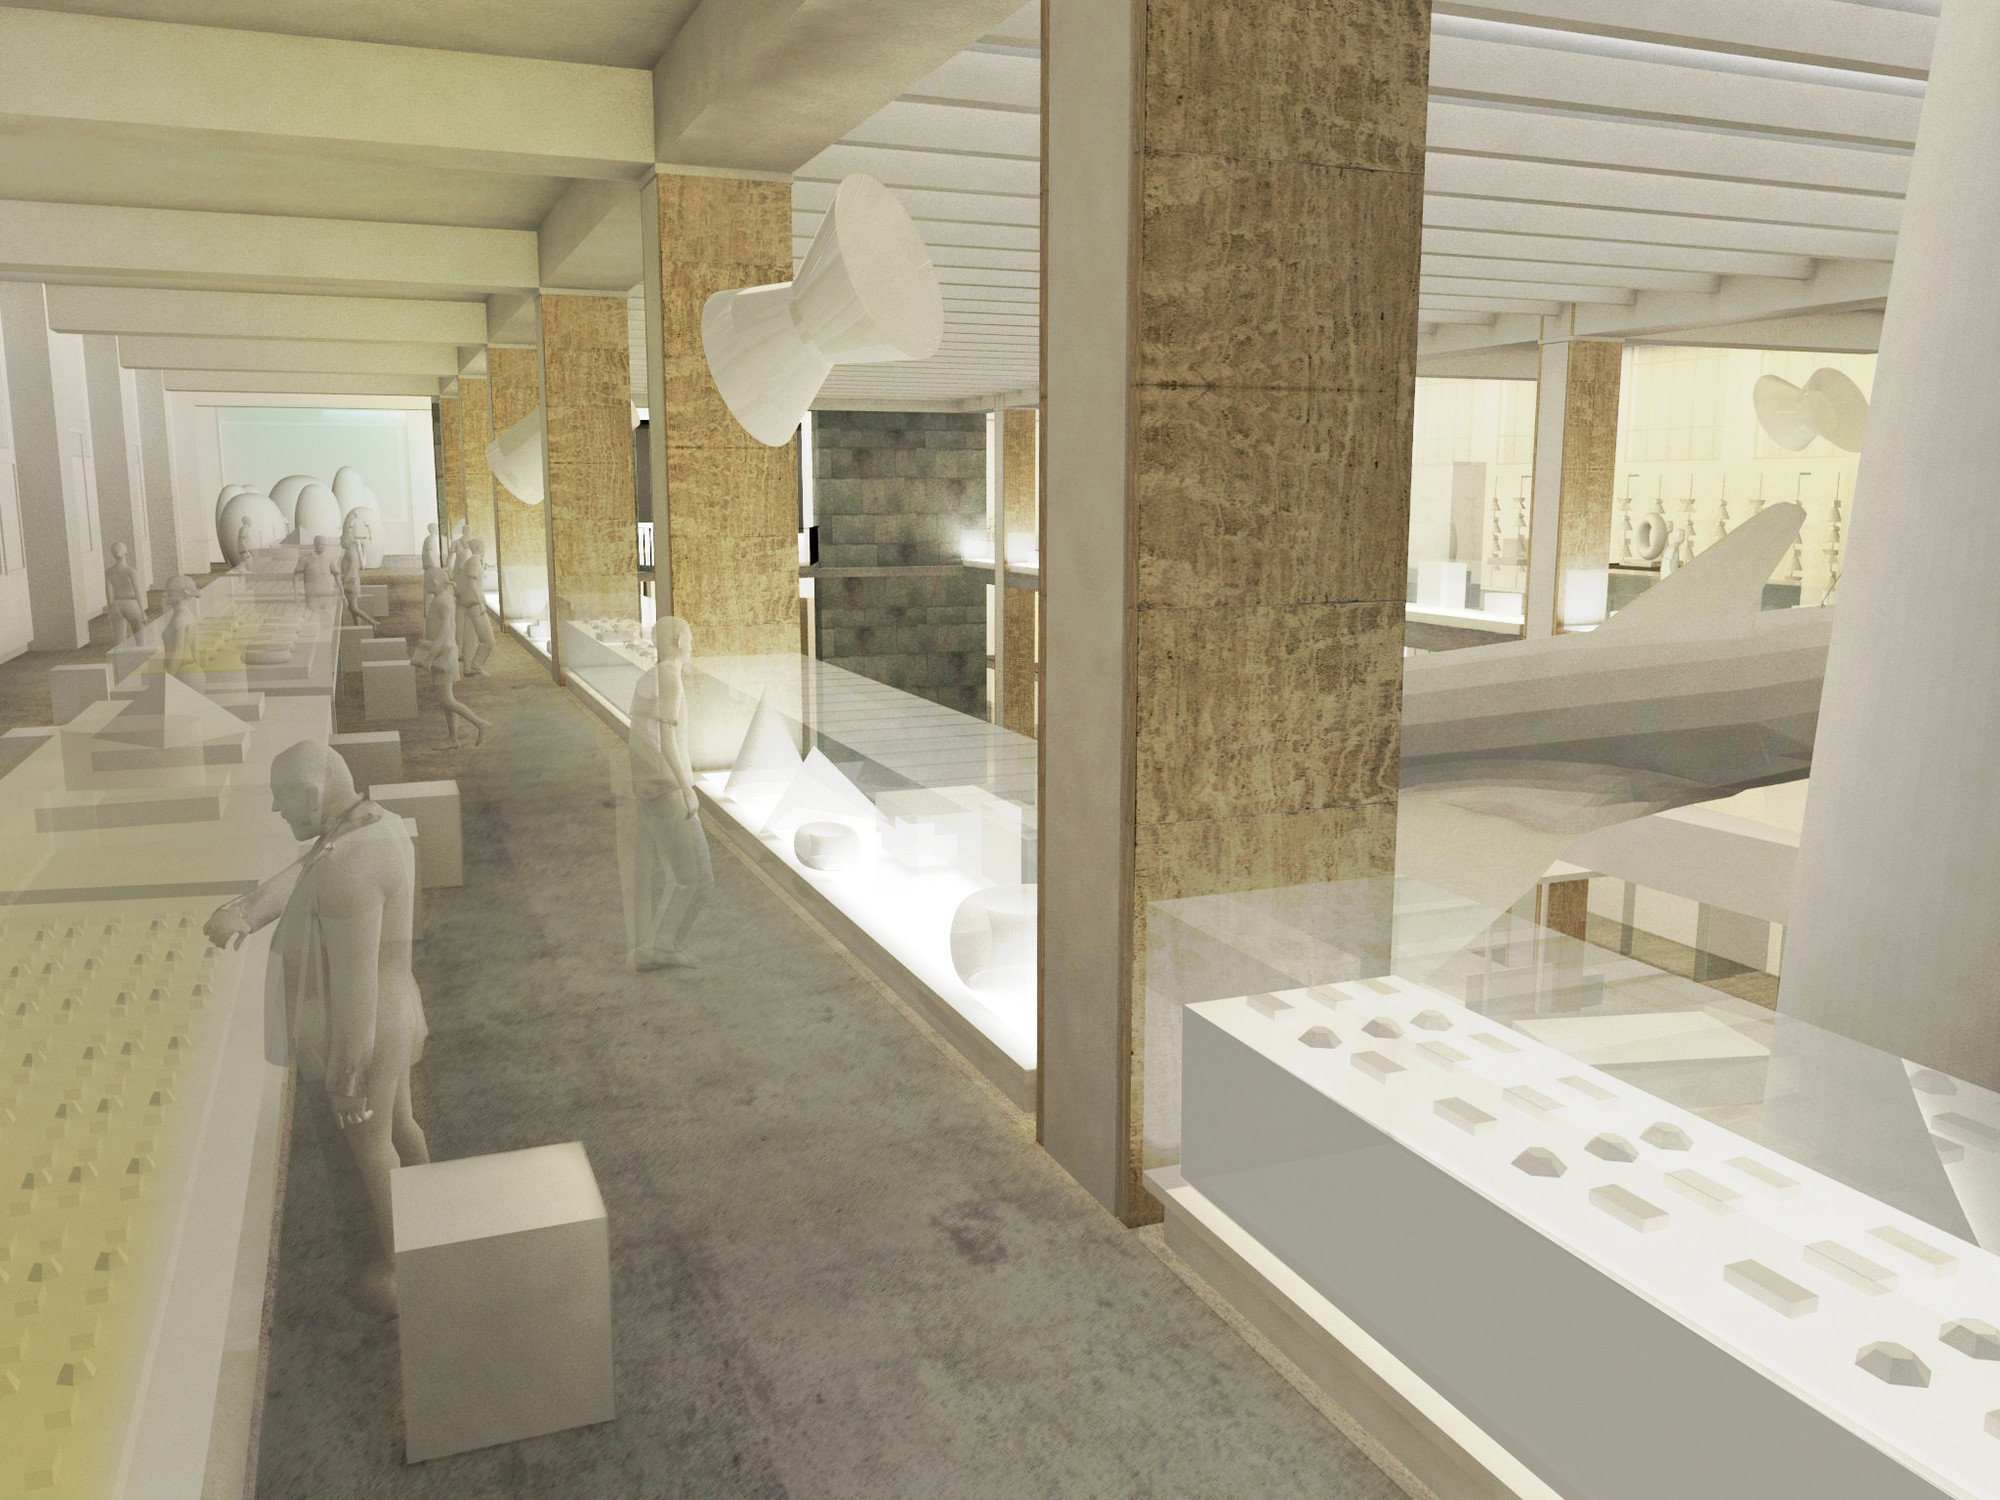 London Science Museum Selects Wilkinson Eyre to Design Medical Galleries, © Wilkinson Eyre